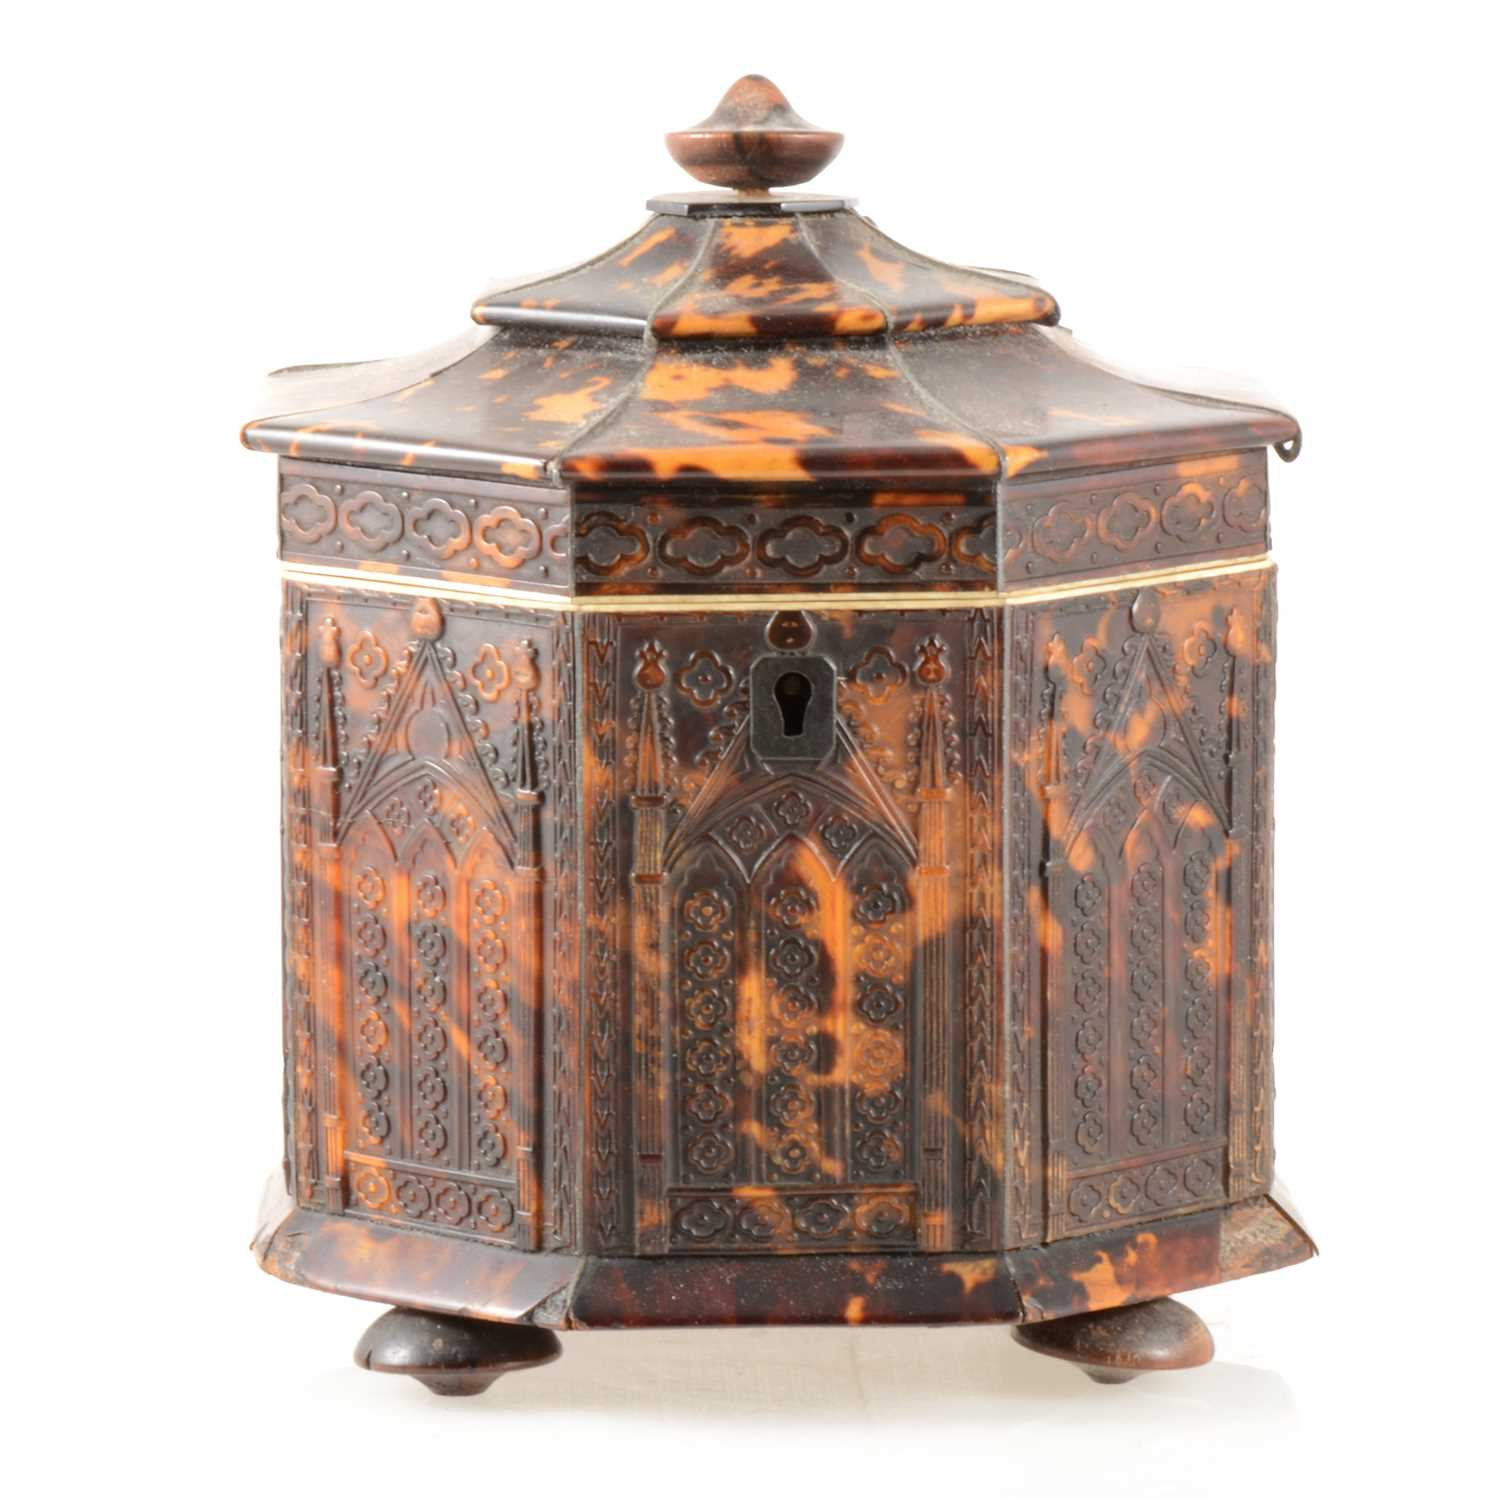 84 - A William IV tortoiseshell octagonal shape tea caddy